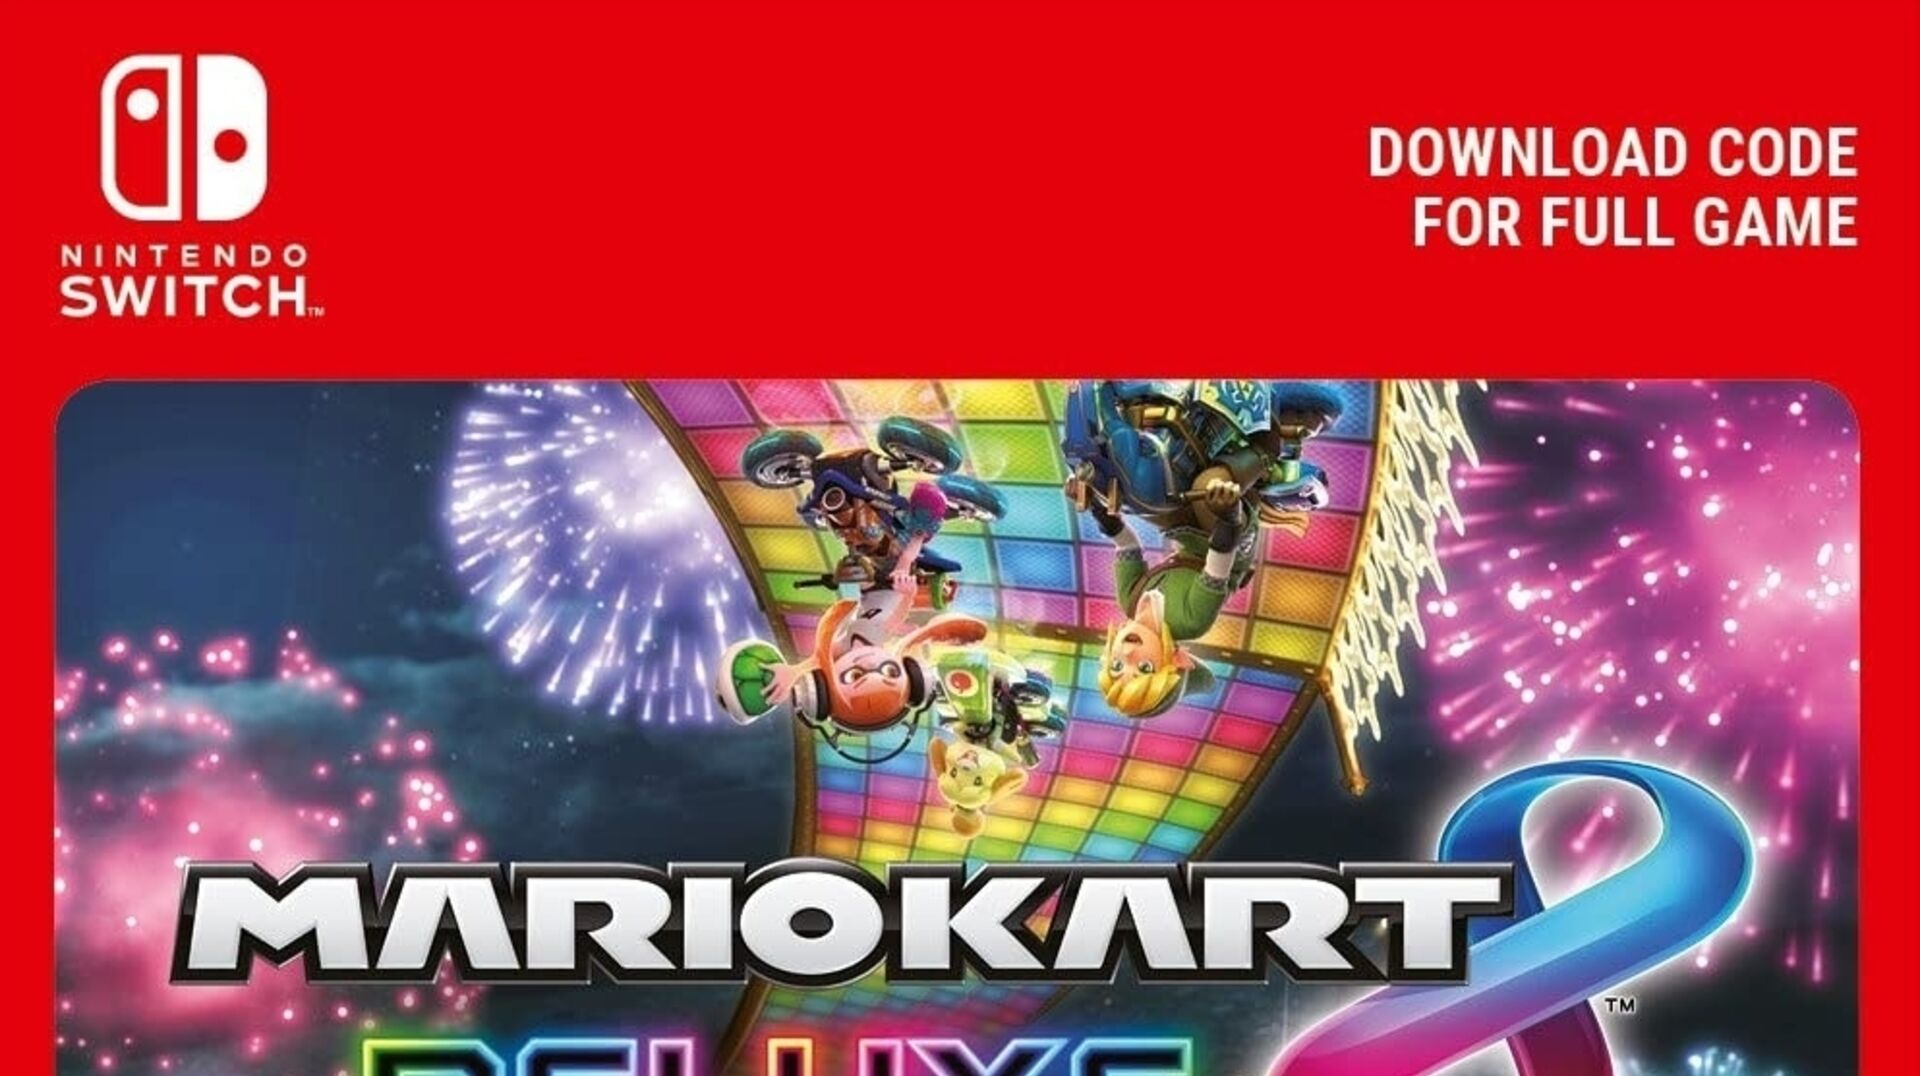 Nintendo Halts Sale Of Digital Download Codes For Its Games Through European Retailers Eurogamer Net